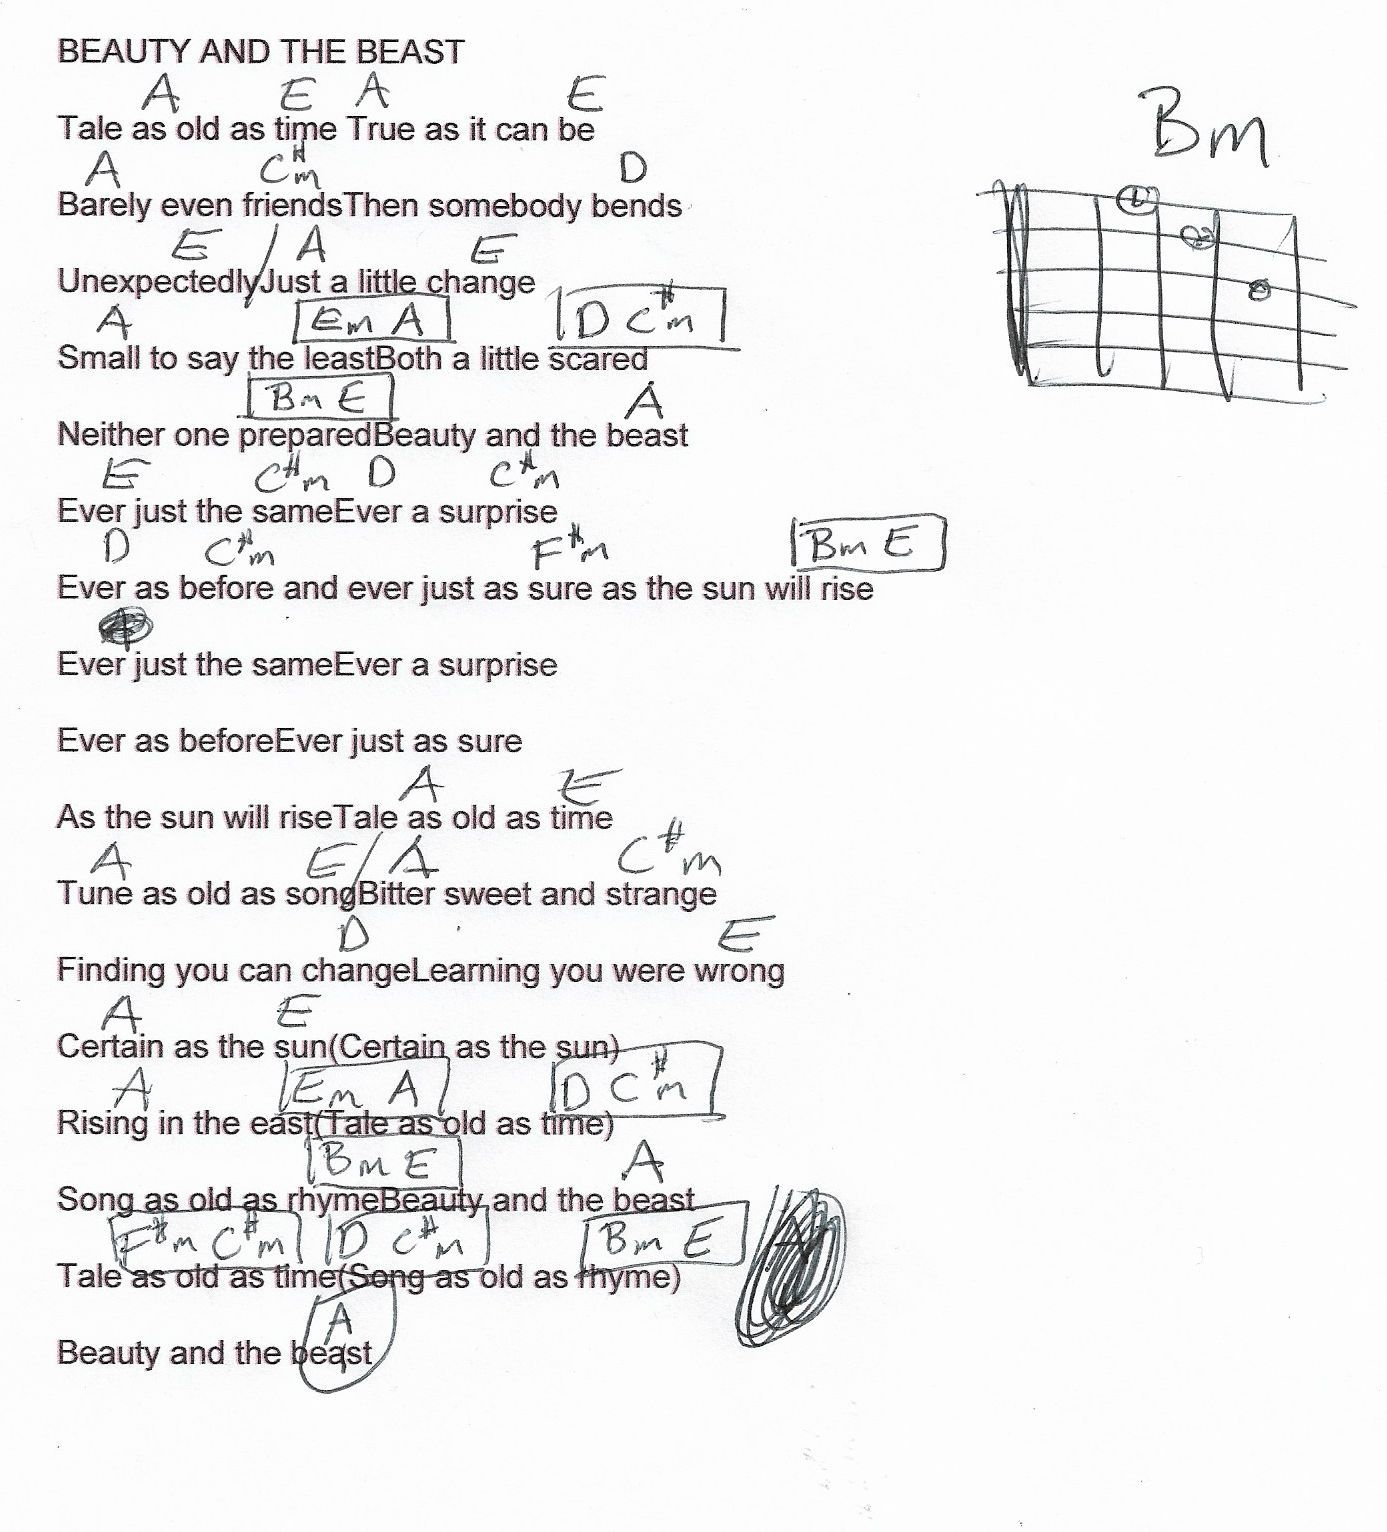 beauty and the beast chords # 1